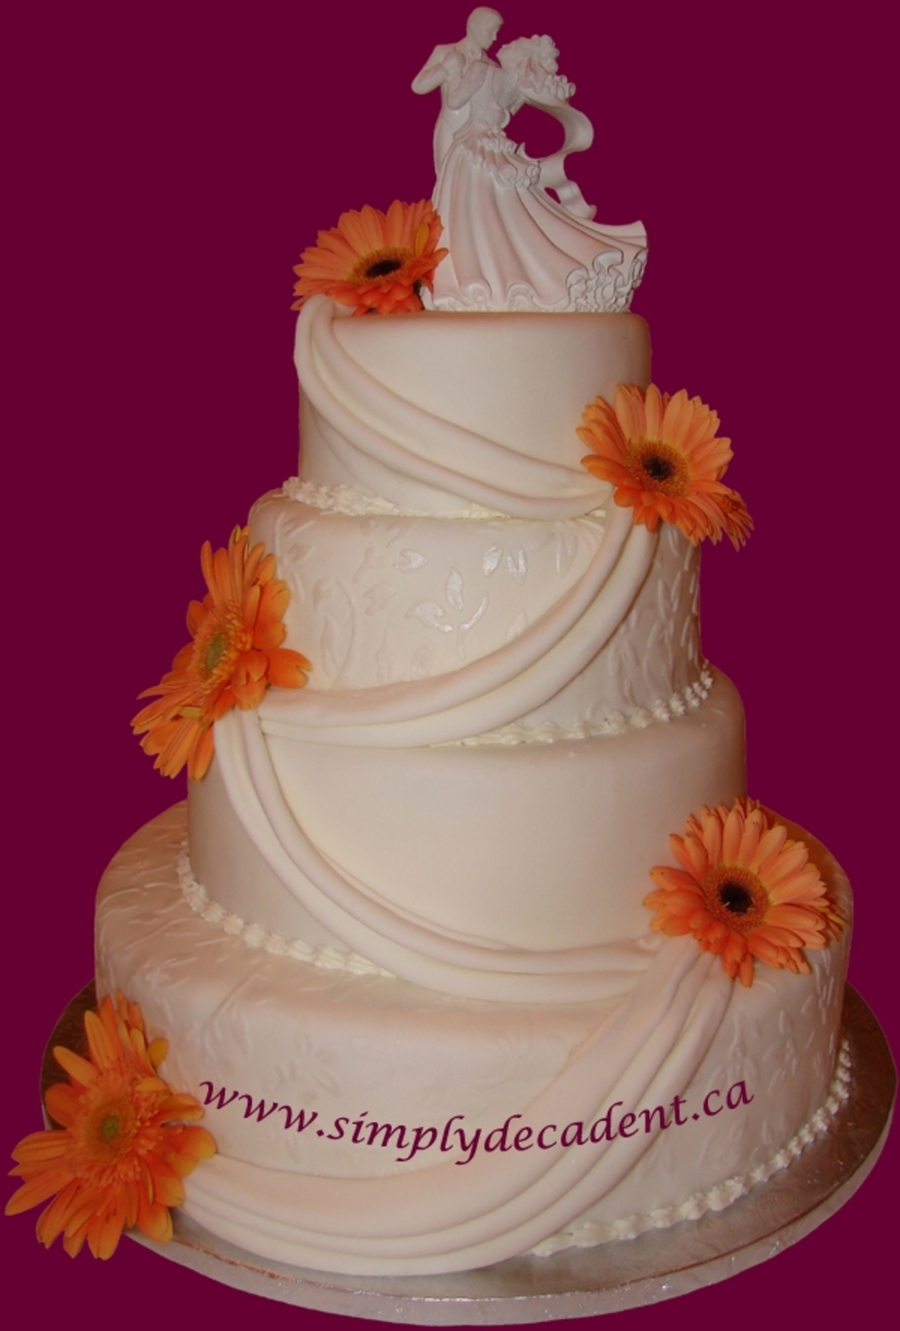 4 Tier Wedding Cake With Swags And Gerber Daisies on Cake Central